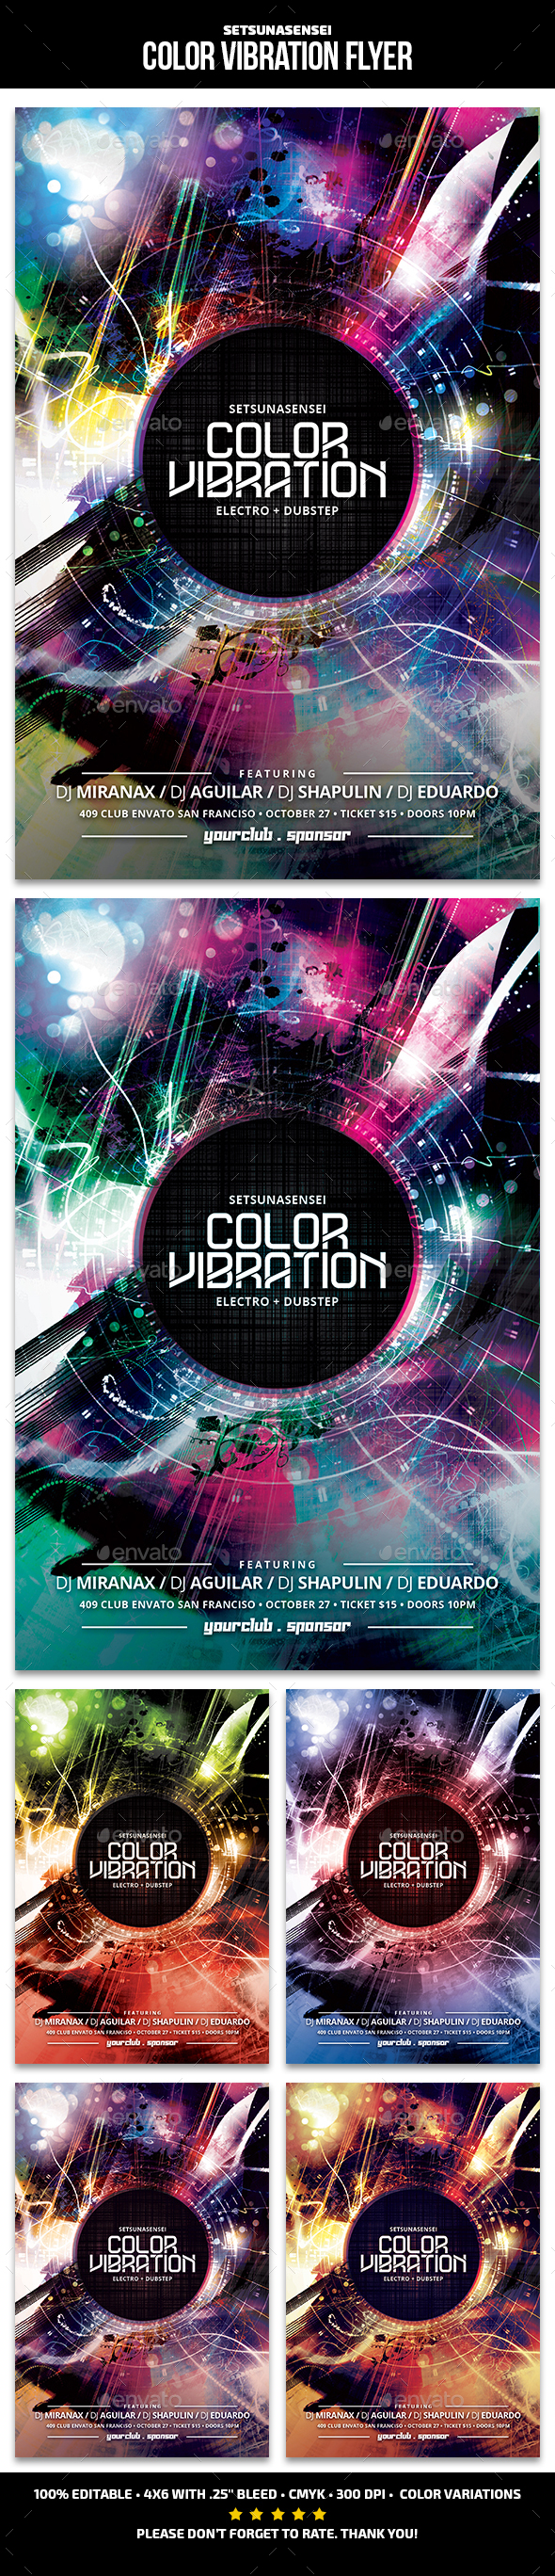 Color Vibration Flyer - Clubs & Parties Events